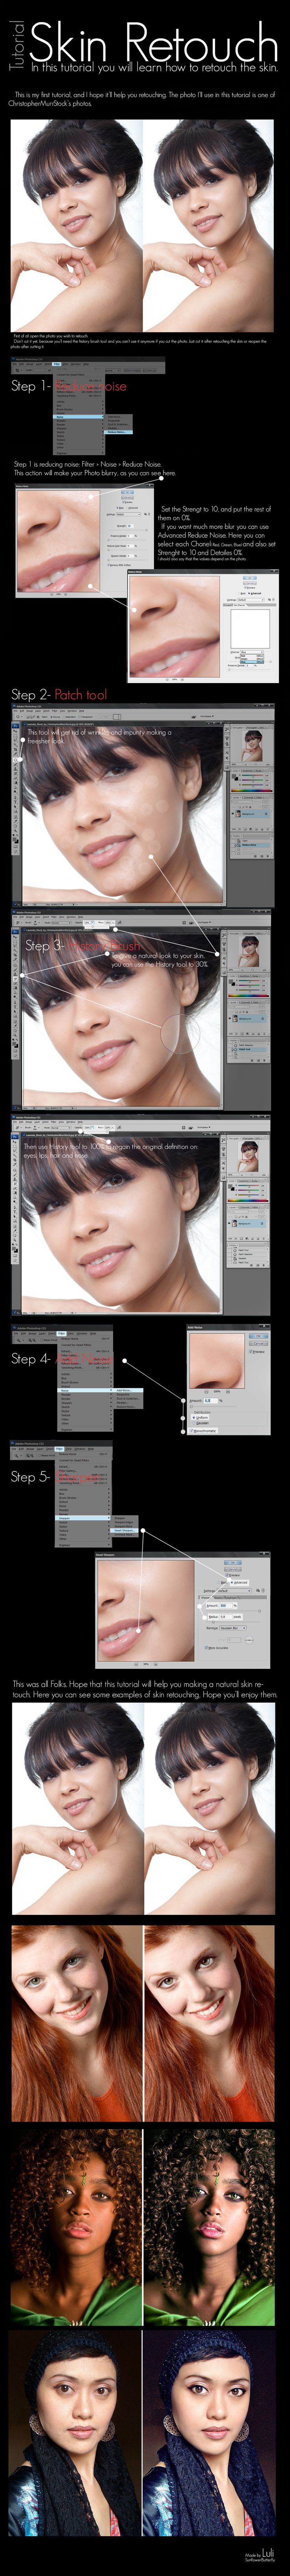 Skin Retouch Tutorial by ~Lore03 on deviantART....don't quite believe in photoshop for these purposes, but good to know what is all behind a re-touched photo